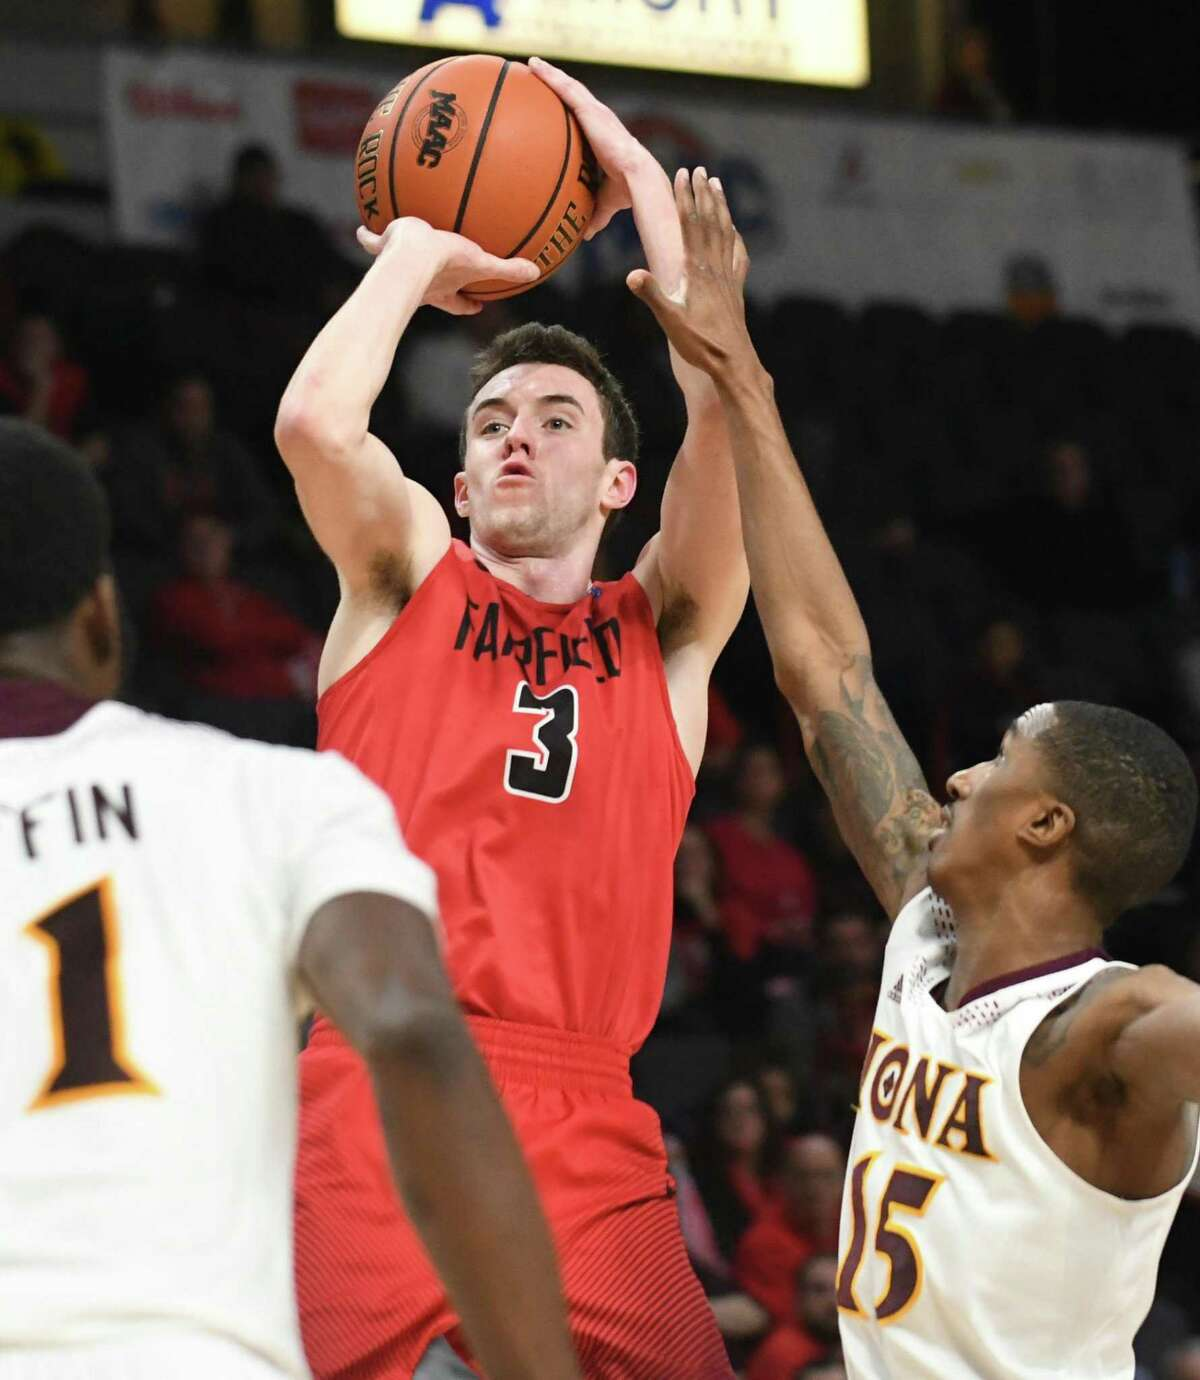 Tyler Nelson, the leading scorer in Fairfield University men's basketball history, was named to the MAAC's 40th anniversary team.